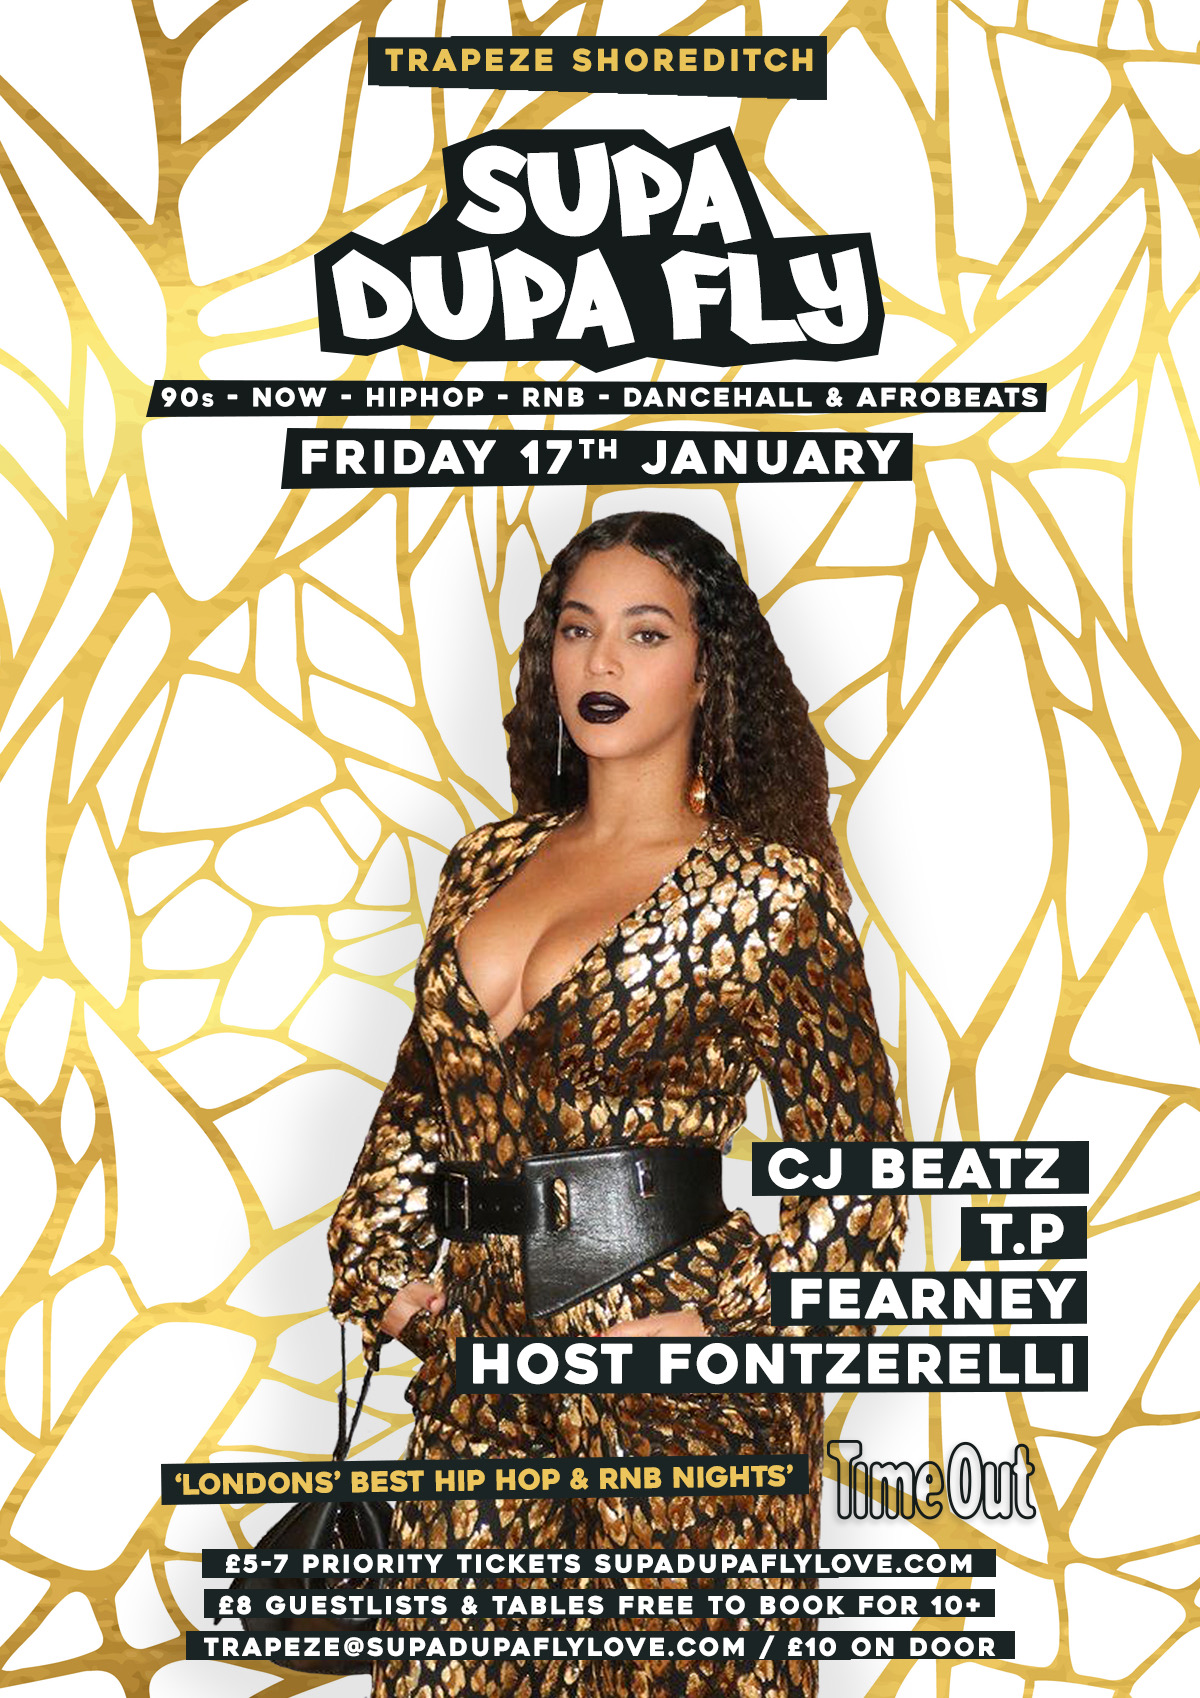 Supa Dupa Fly x 3rd Fri's x March Cancelled